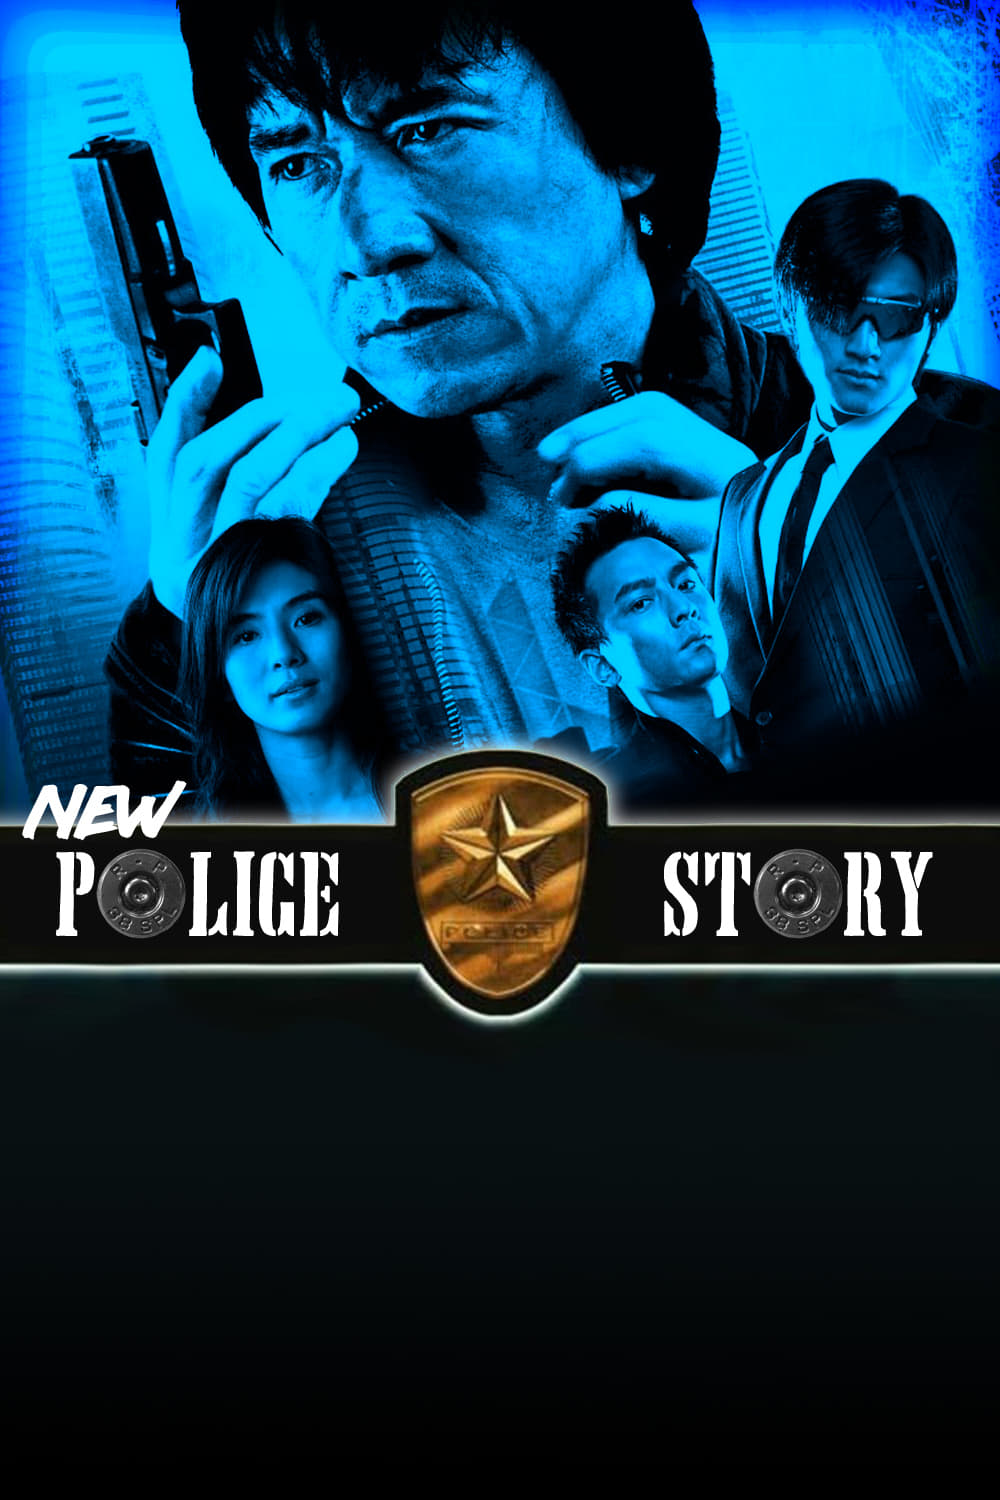 New Police Story (2004) - Posters — The Movie Database (TMDb)